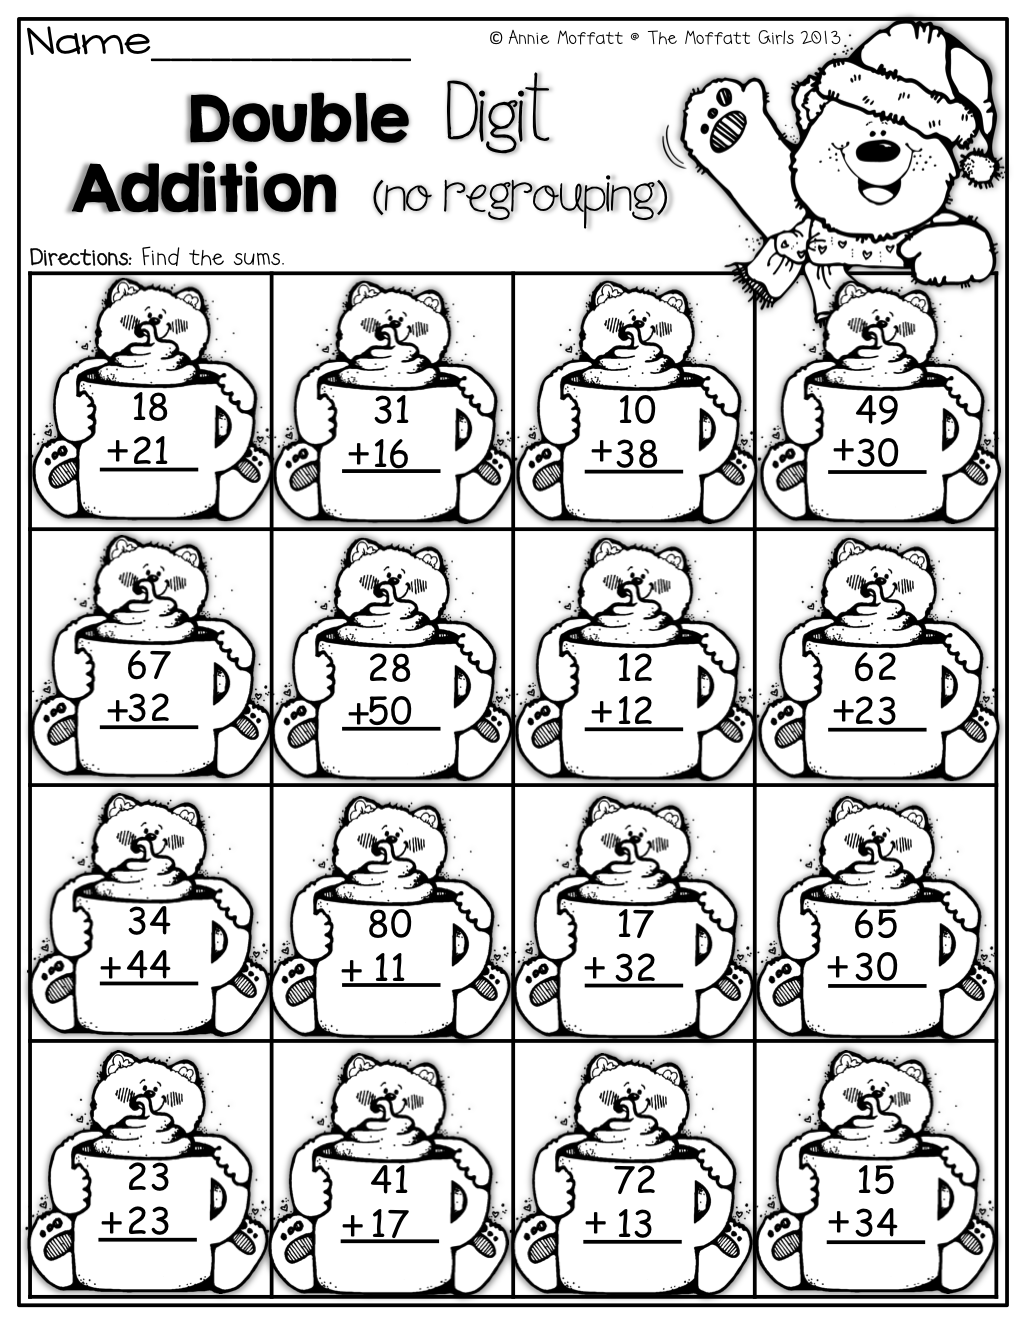 double digit addition with no regrouping  st grade activities  double digit addition with no regrouping